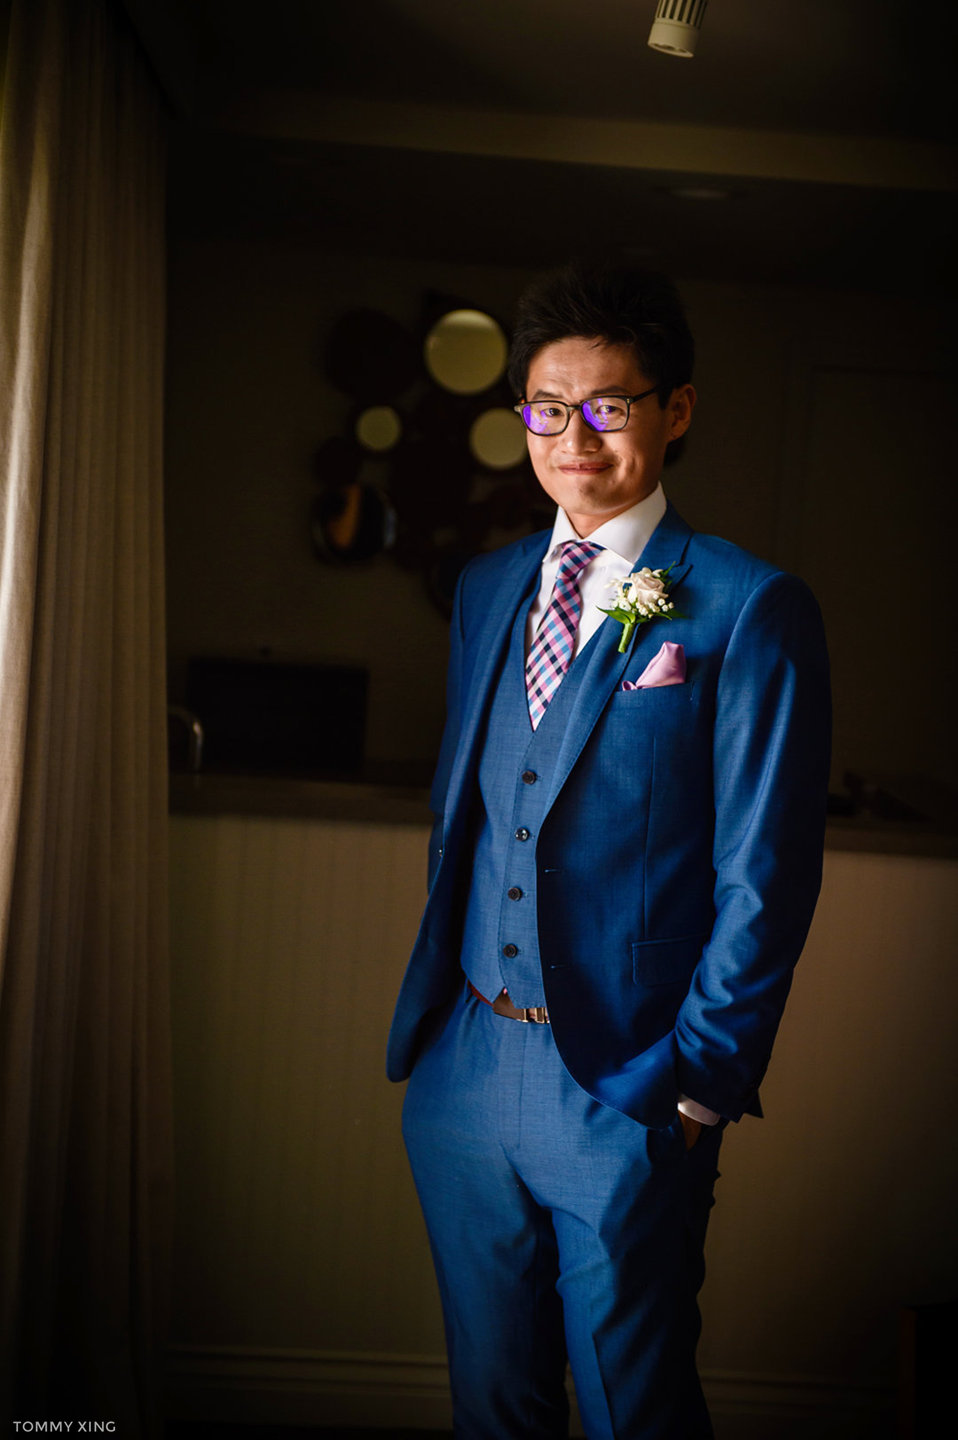 Paradise Point Resort Wedding Xiaolu & Bin San Diego 圣地亚哥婚礼摄影跟拍 Tommy Xing Photography 洛杉矶婚礼婚纱照摄影师 052.jpg